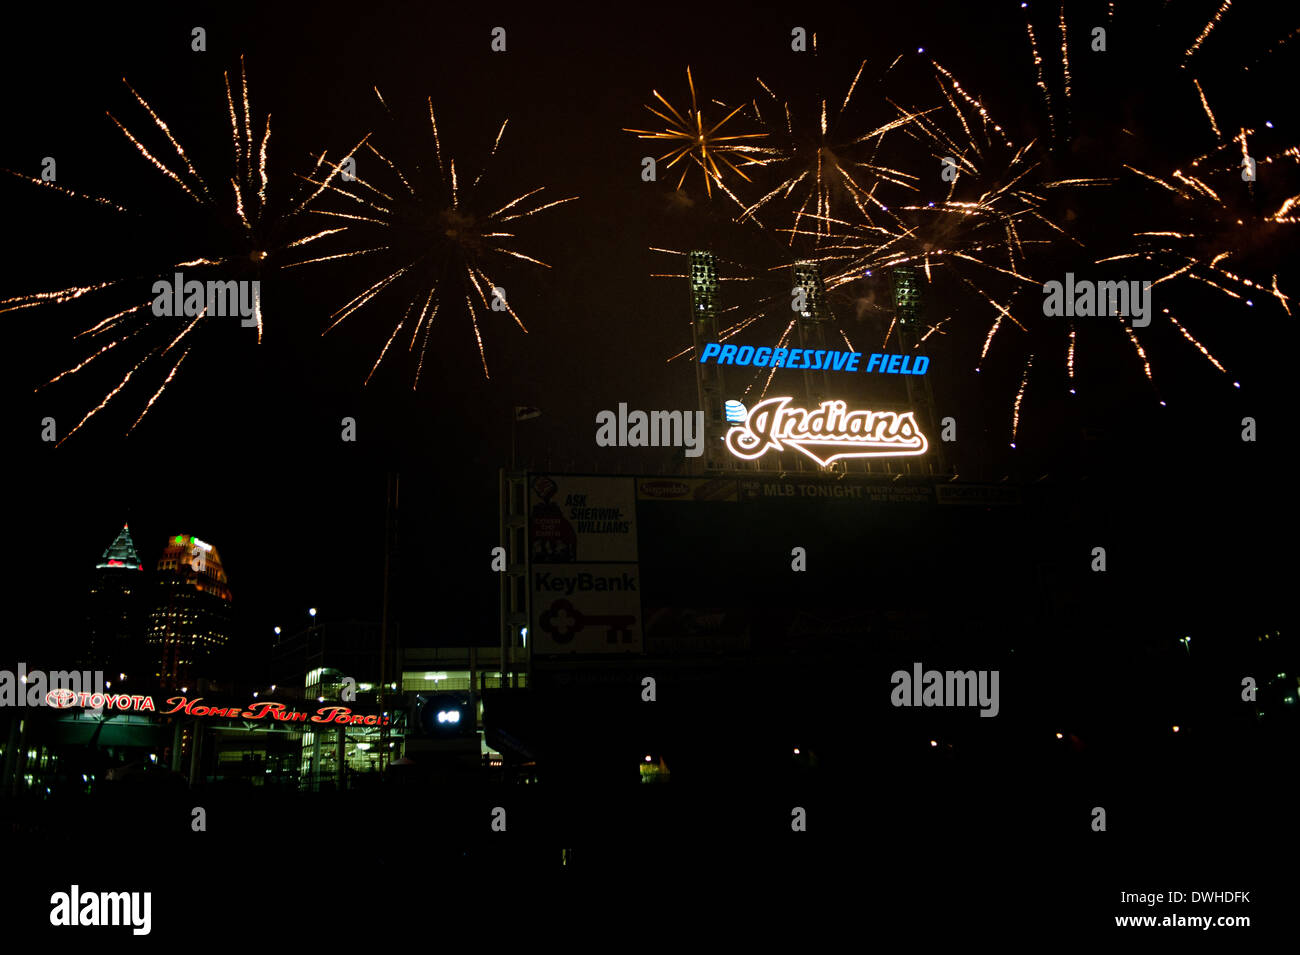 Fireworks at Progressive Field, home of the Cleveland Indians - Stock Image